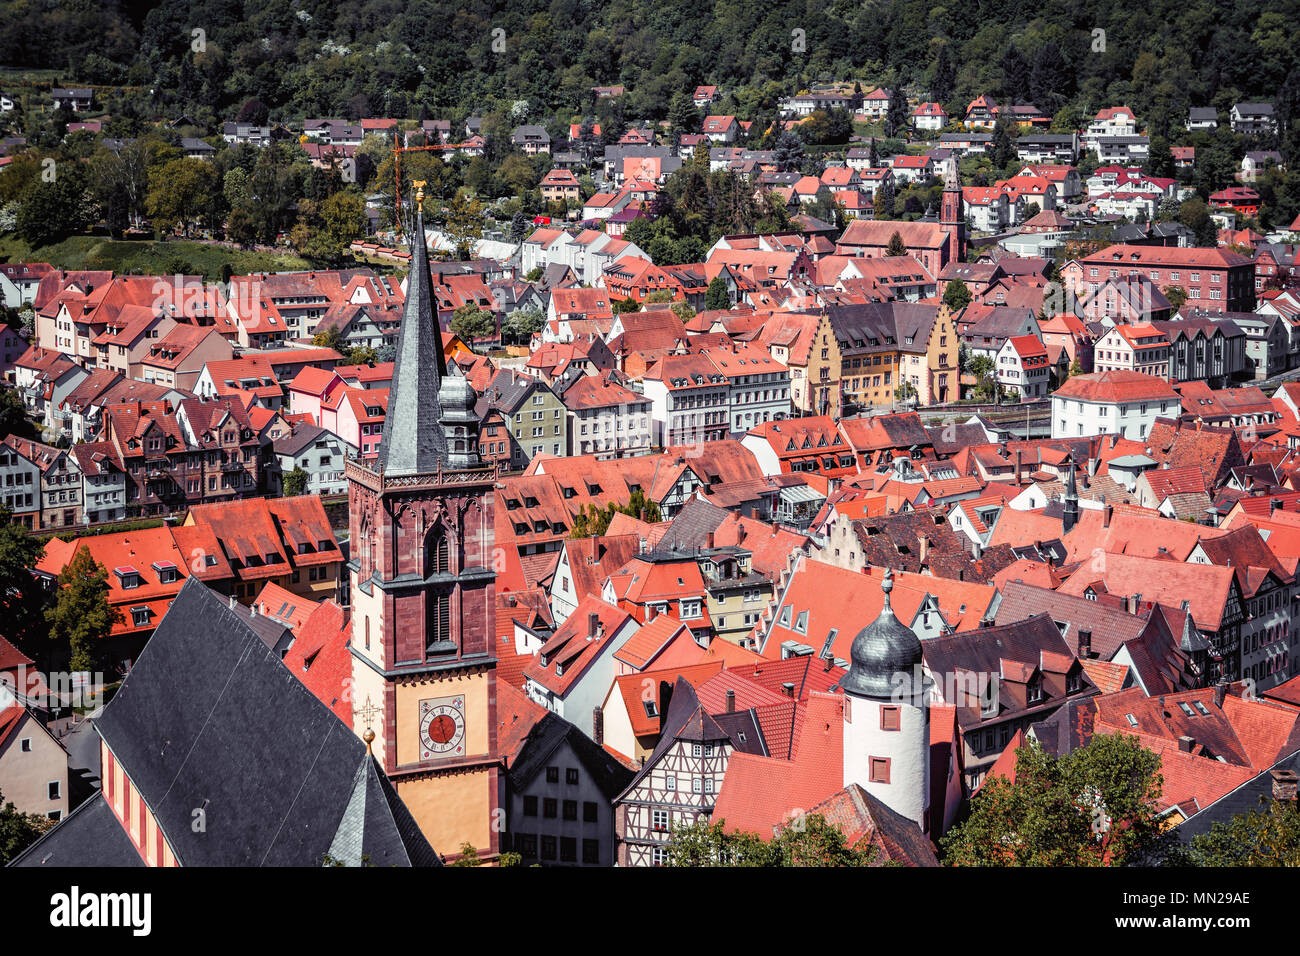 Scenic summer aerial panorama of the Old Town town in Wertheim am Main, Bavaria, Germany - Stock Image